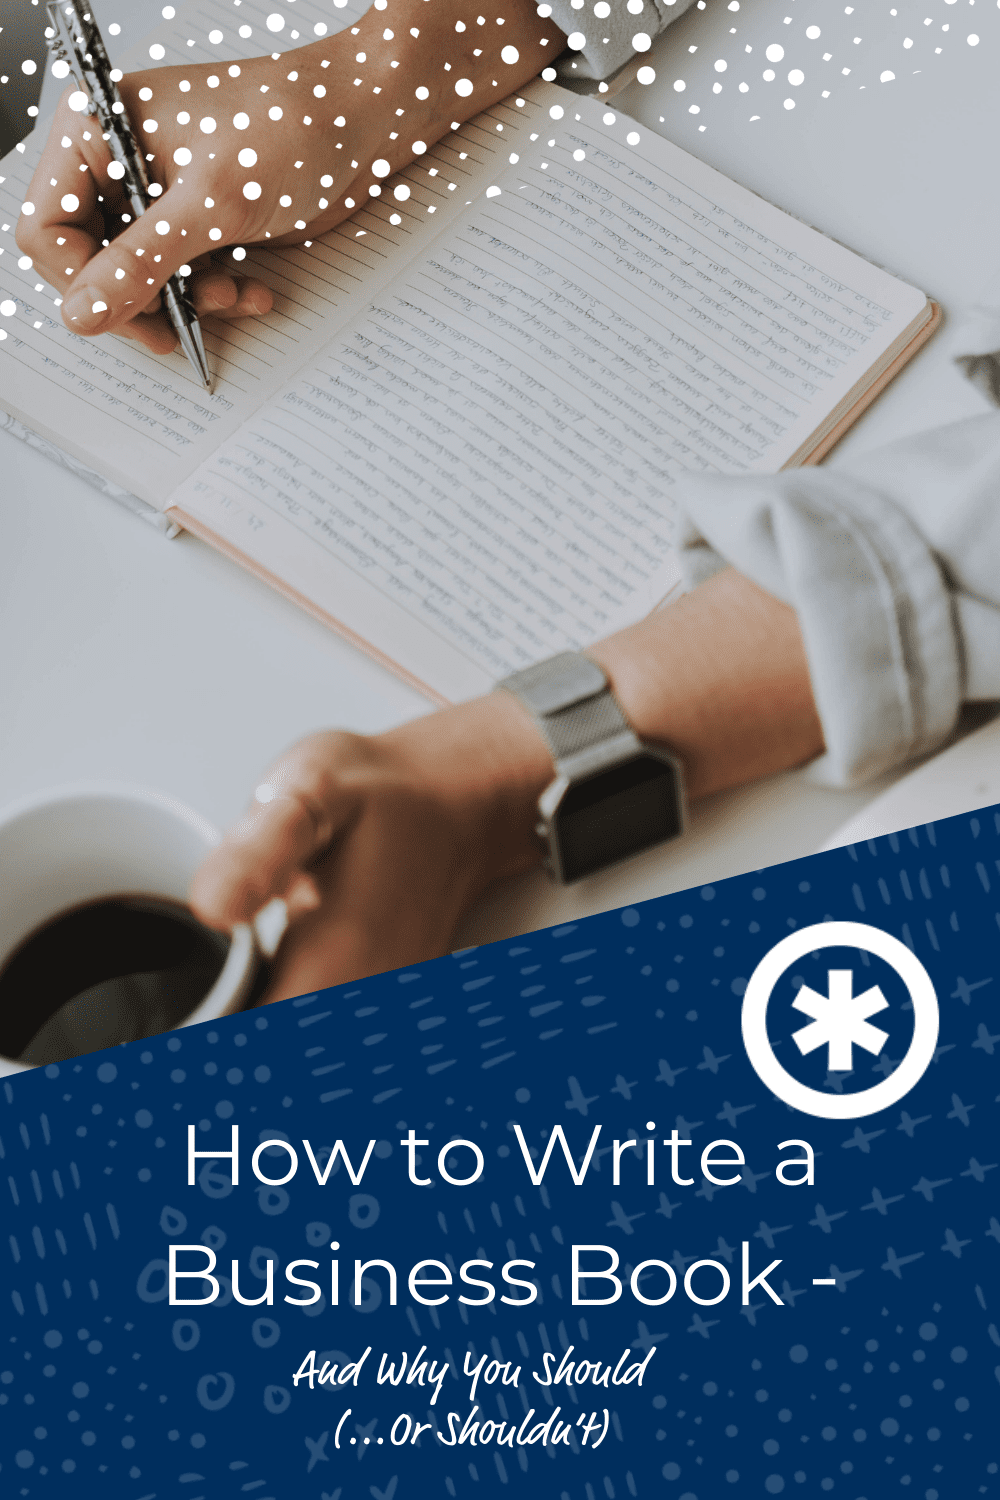 How to Write a Business Book - Should You Do It-Guud